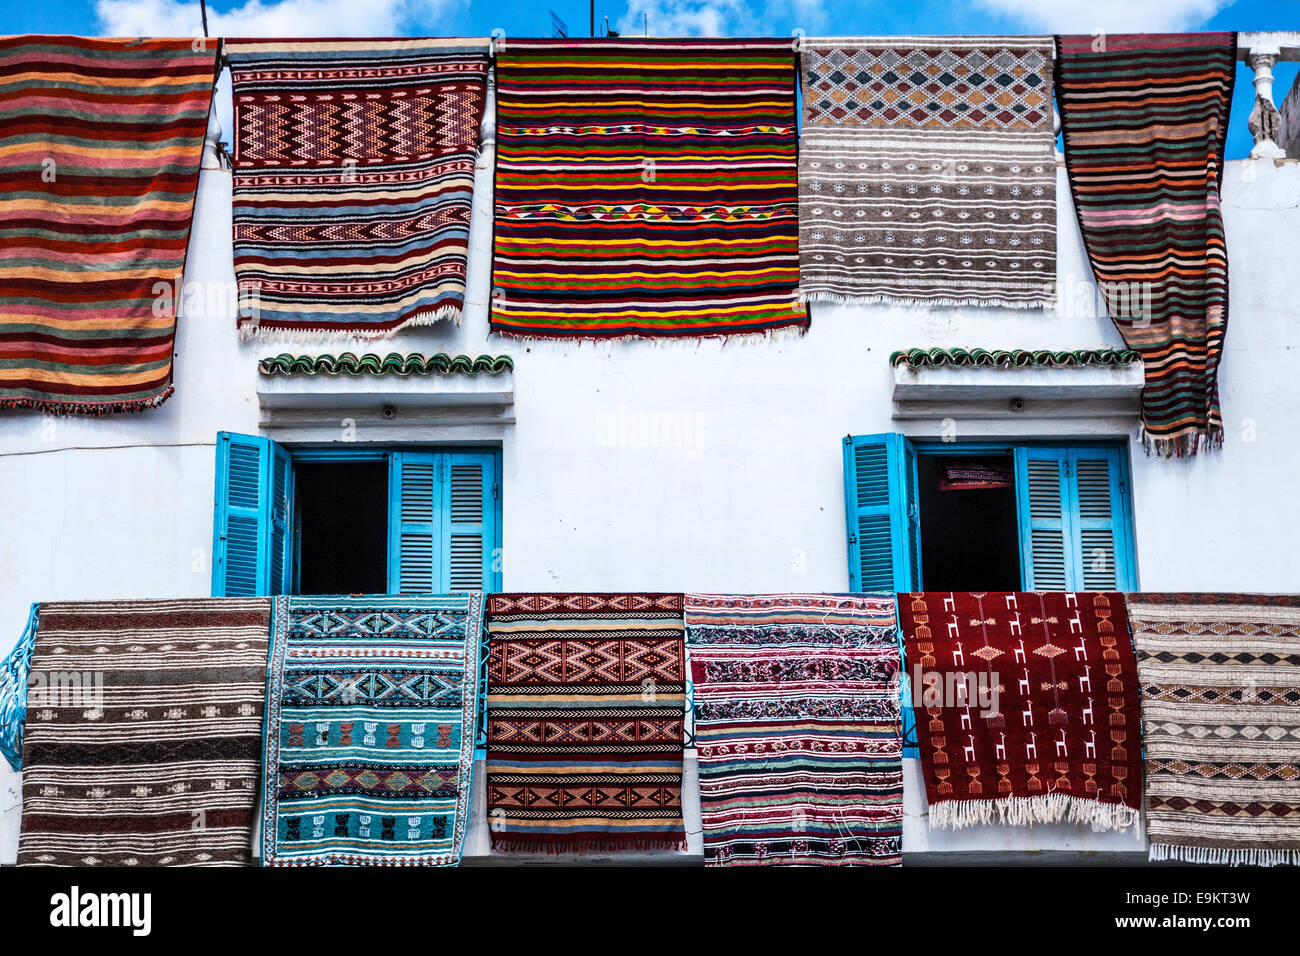 Carpets and rugs hanging out on display from a shop in the Place de la Grande Mosque in Sousse,Tunisia. - Stock Image